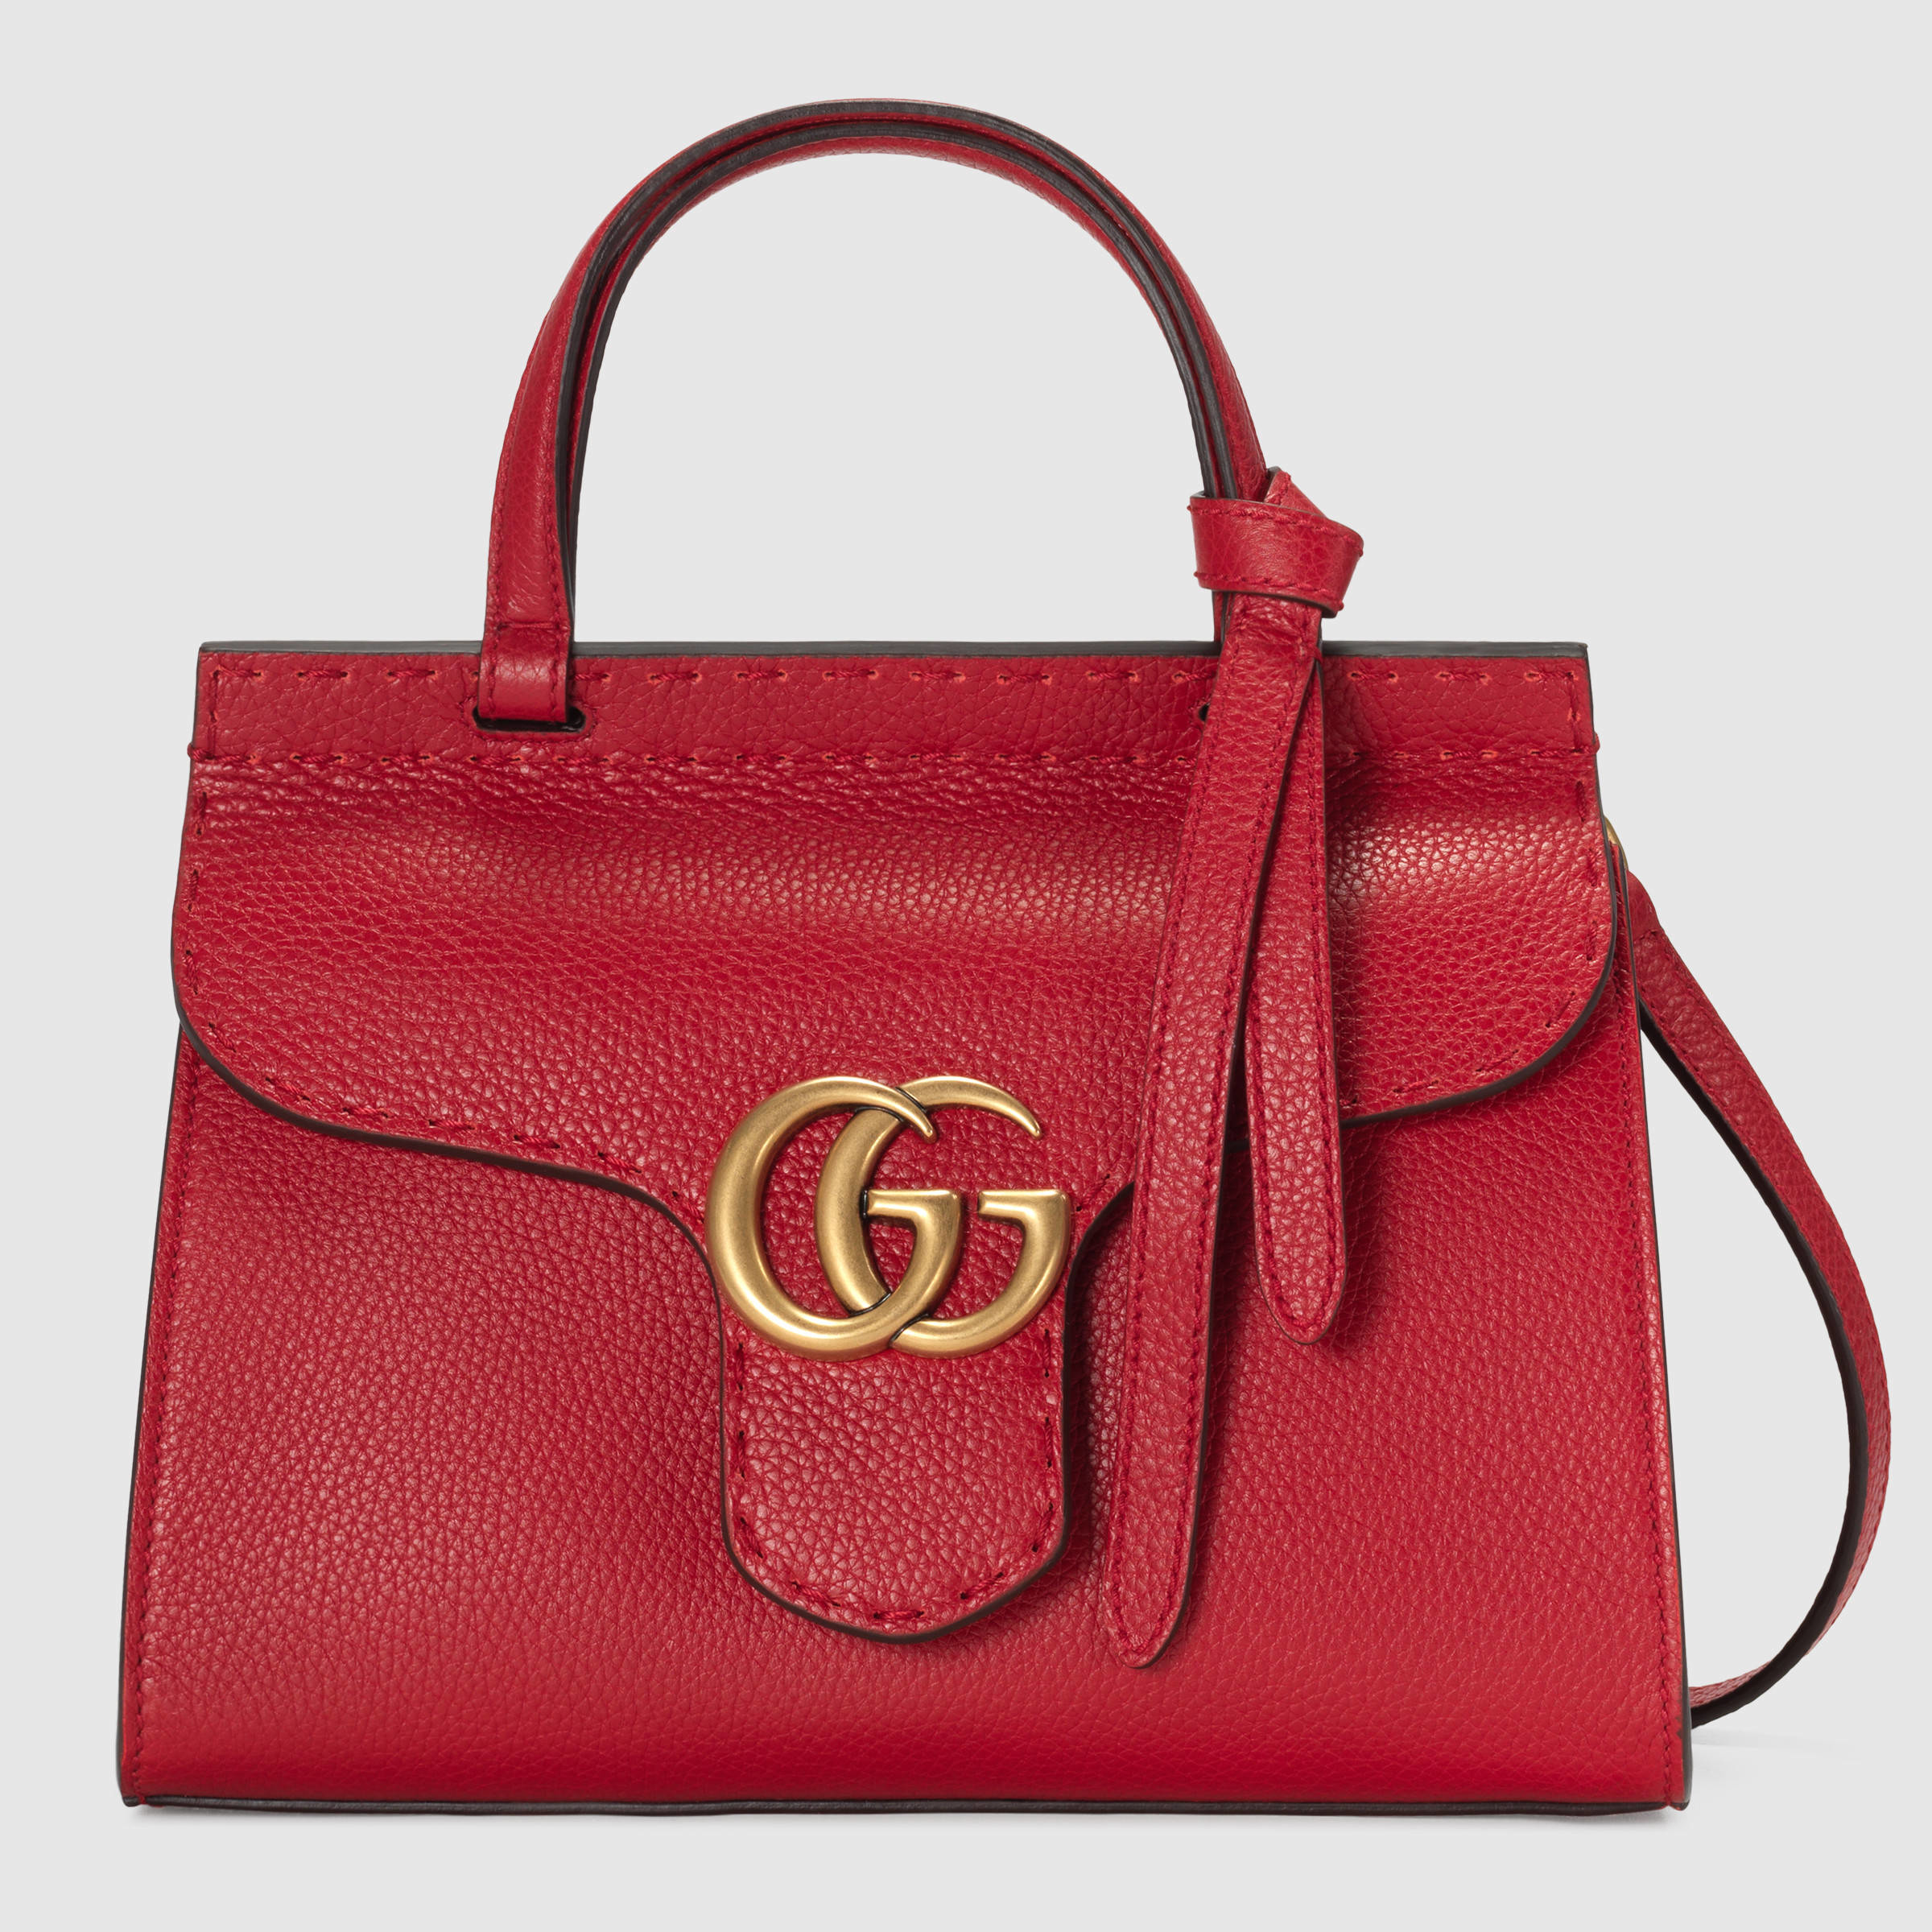 26ca24660bc0 Gucci Gg Marmont Top Handle Bag Red | Stanford Center for ...